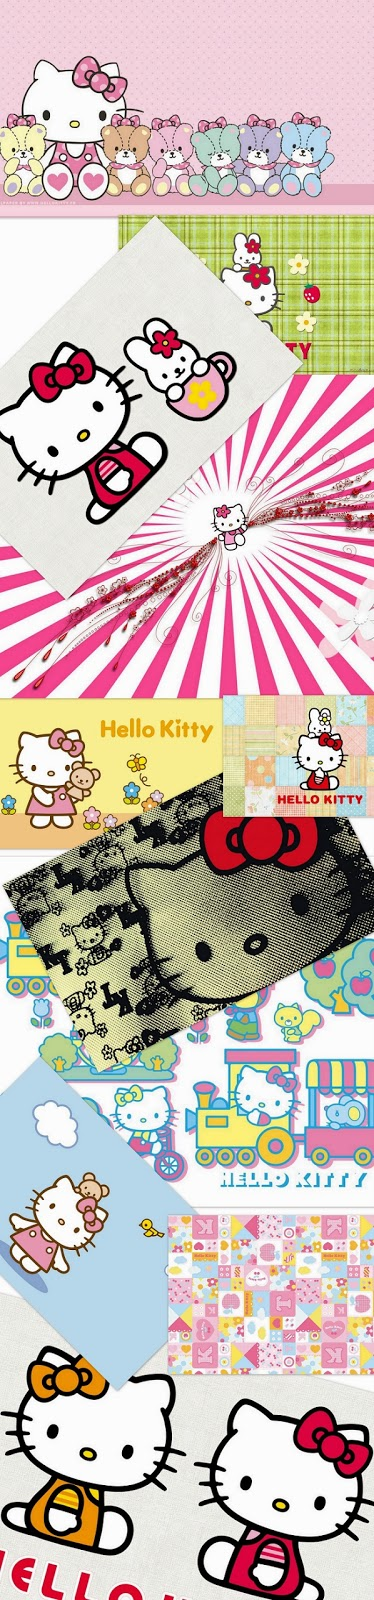 Hello Kitty 2 Theme For Windows 7 And 8 8.1